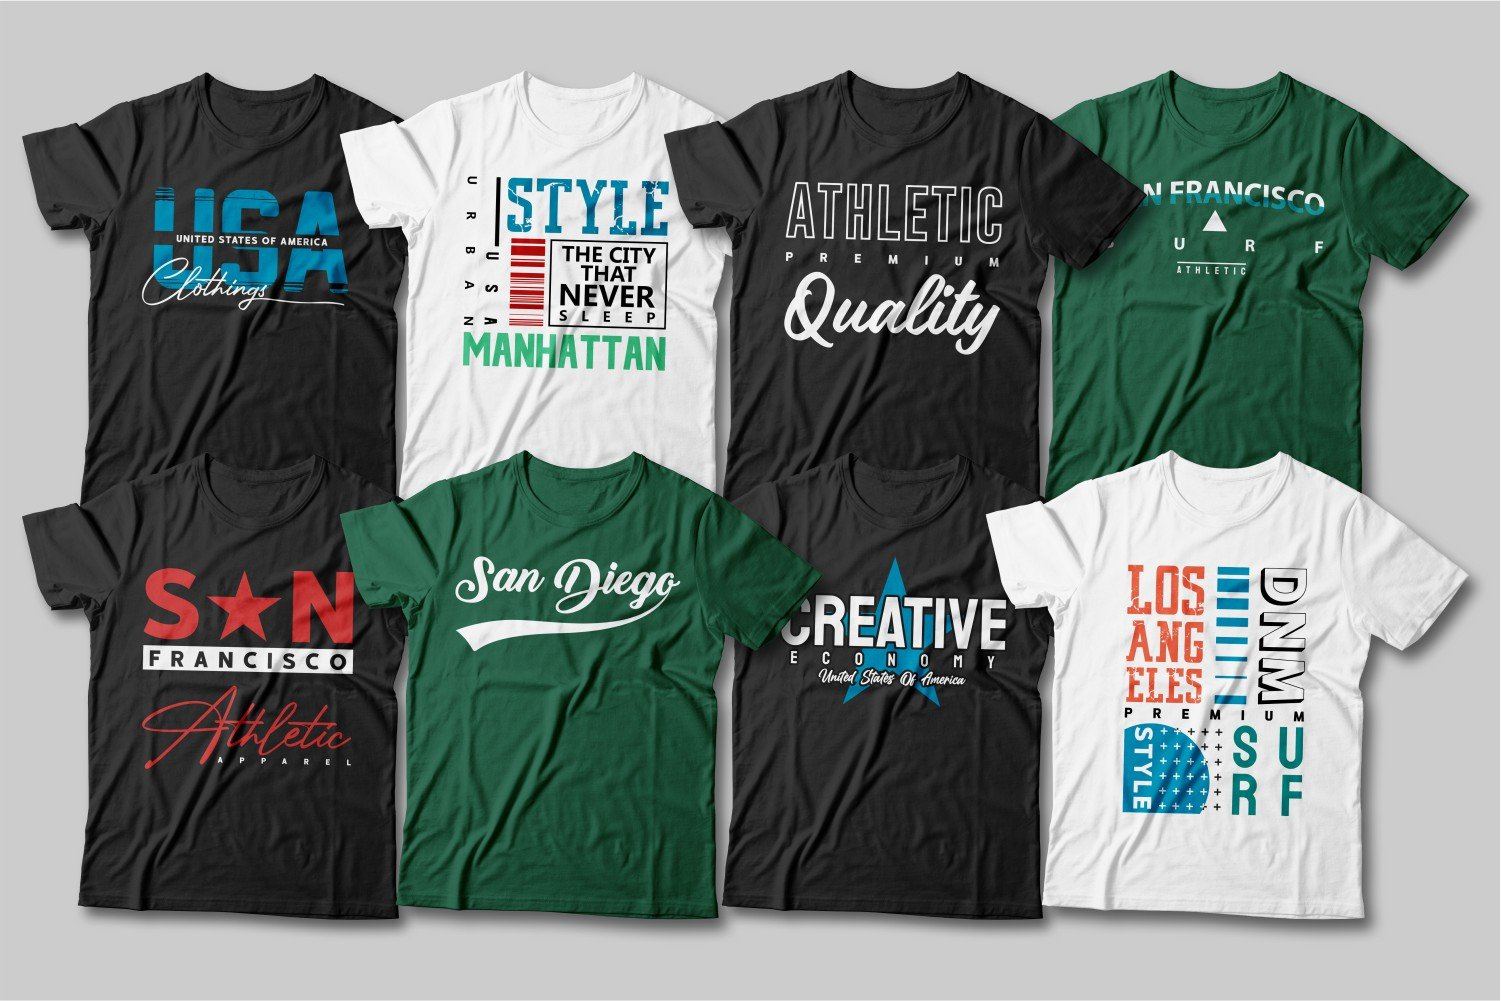 A bunch of T-shirts in different colors - black, green and white.